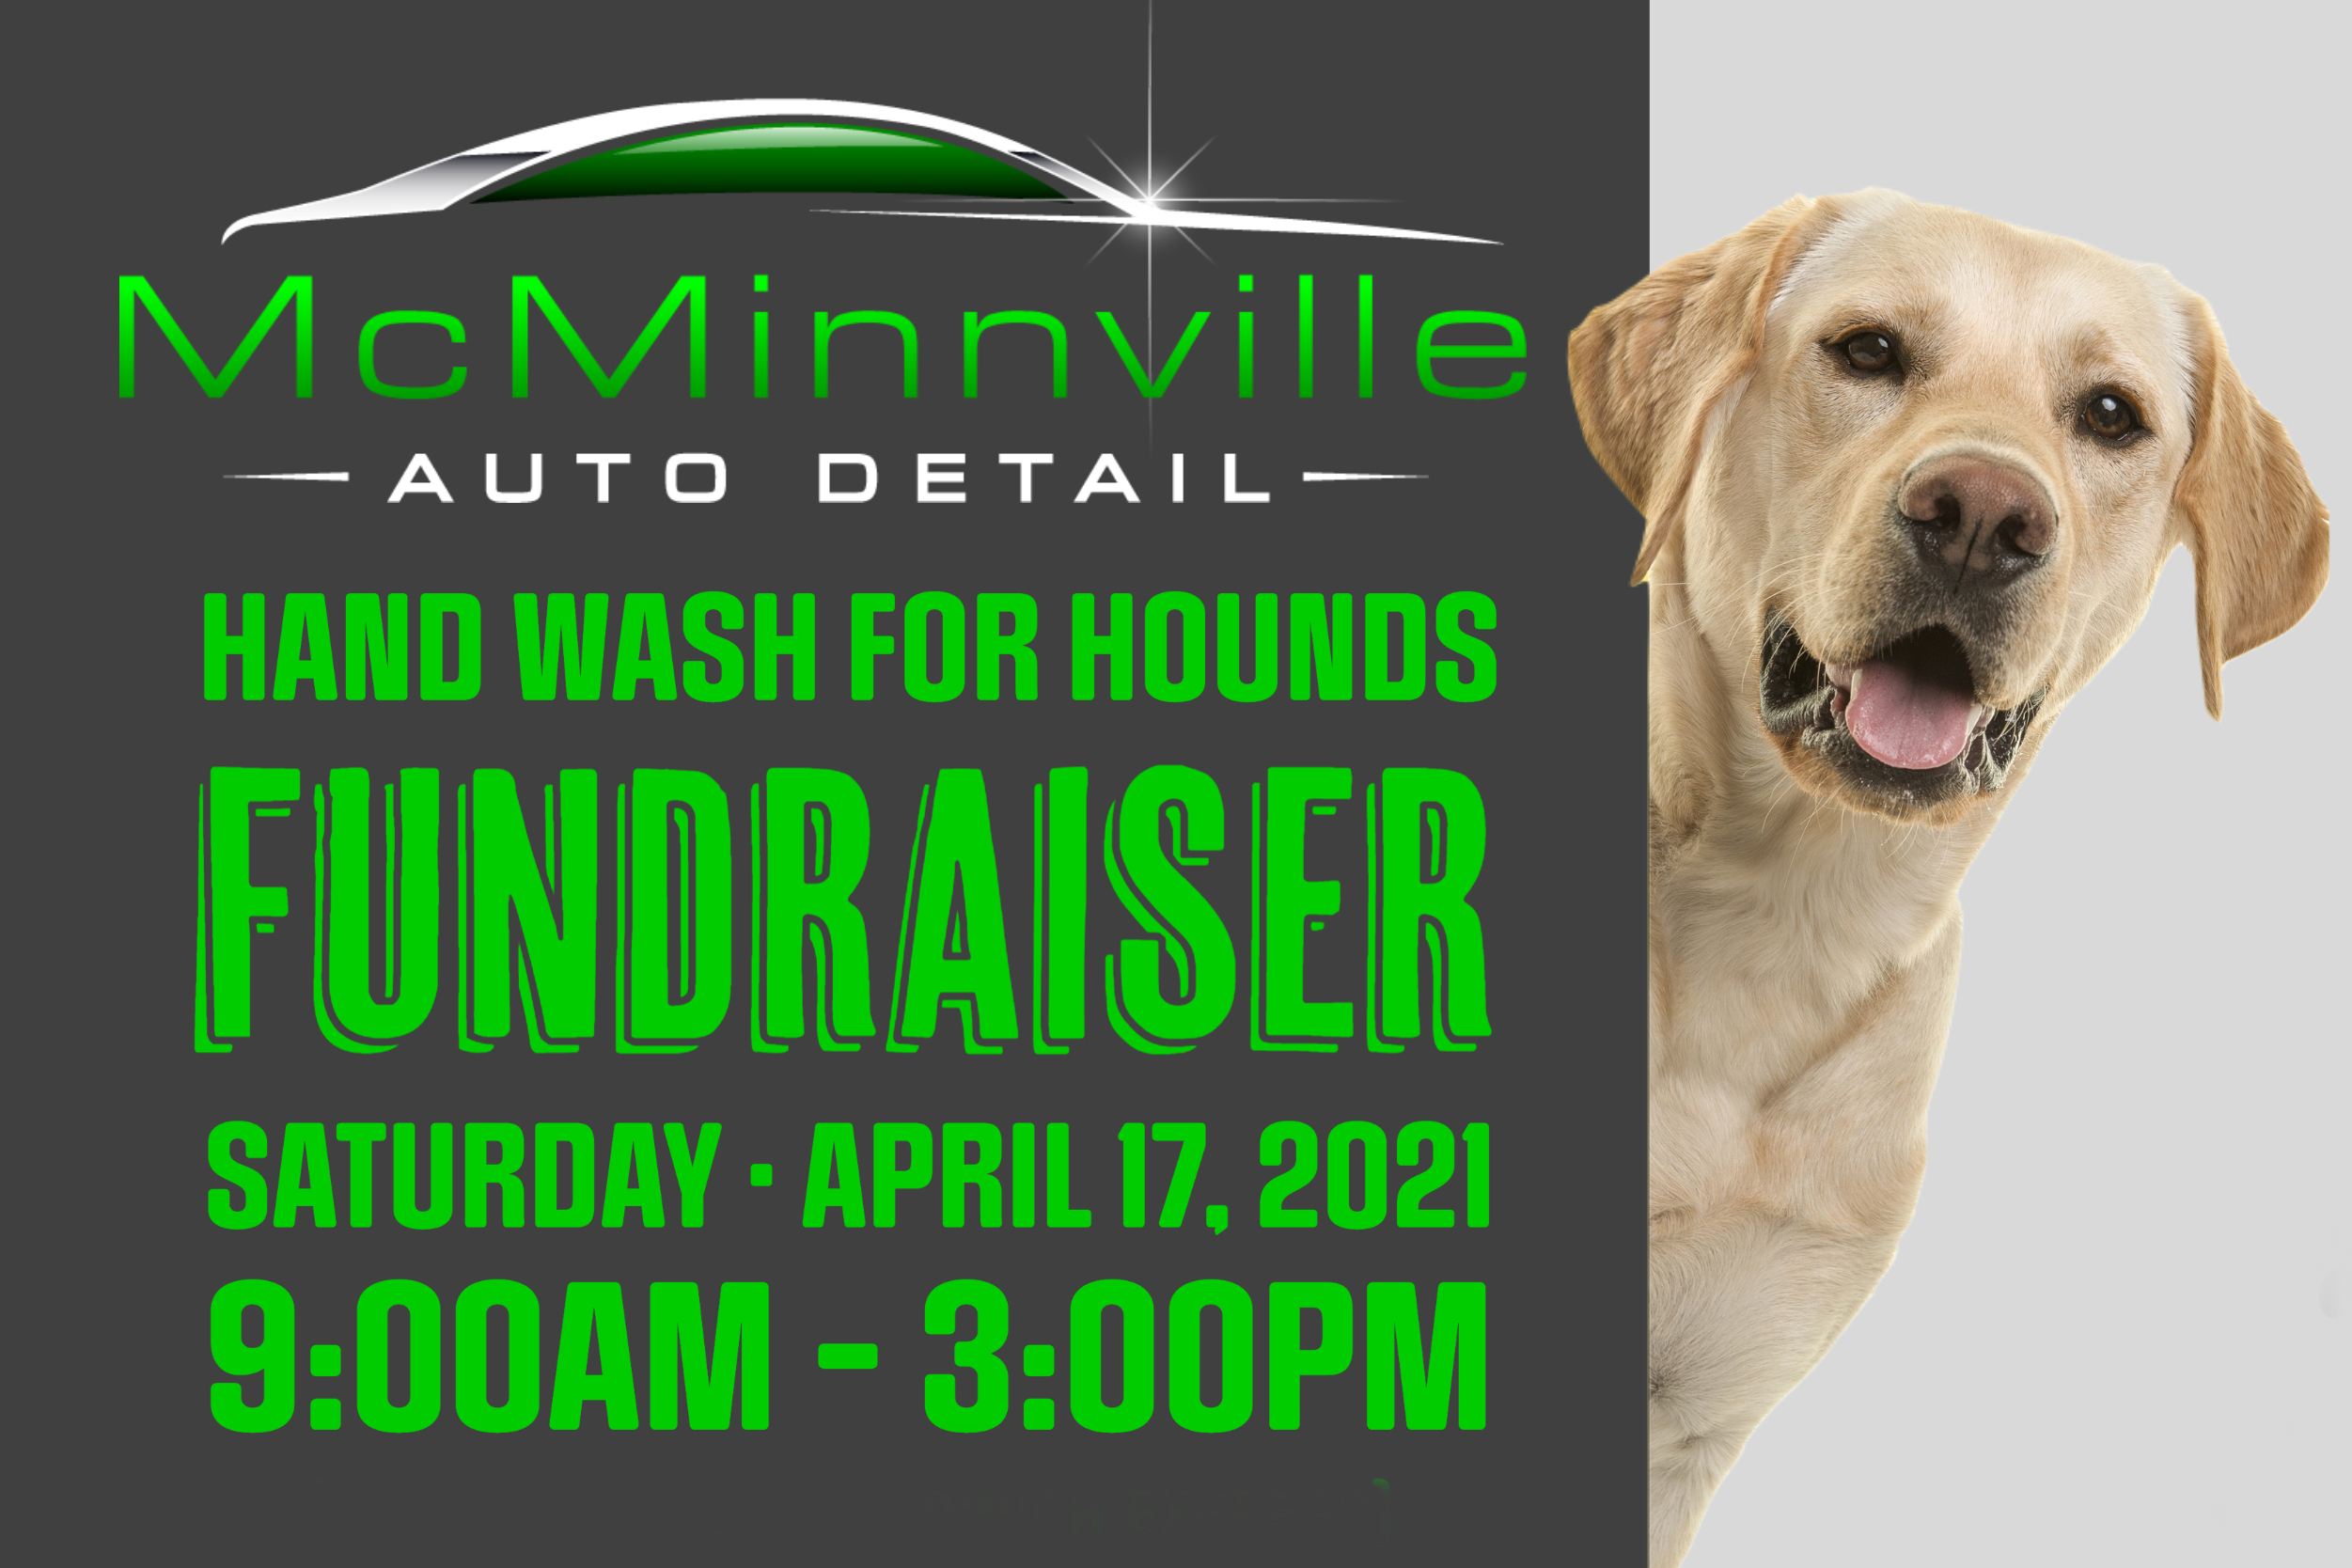 McMinnville Auto Detail Hand Wash For Hounds Fundraiser